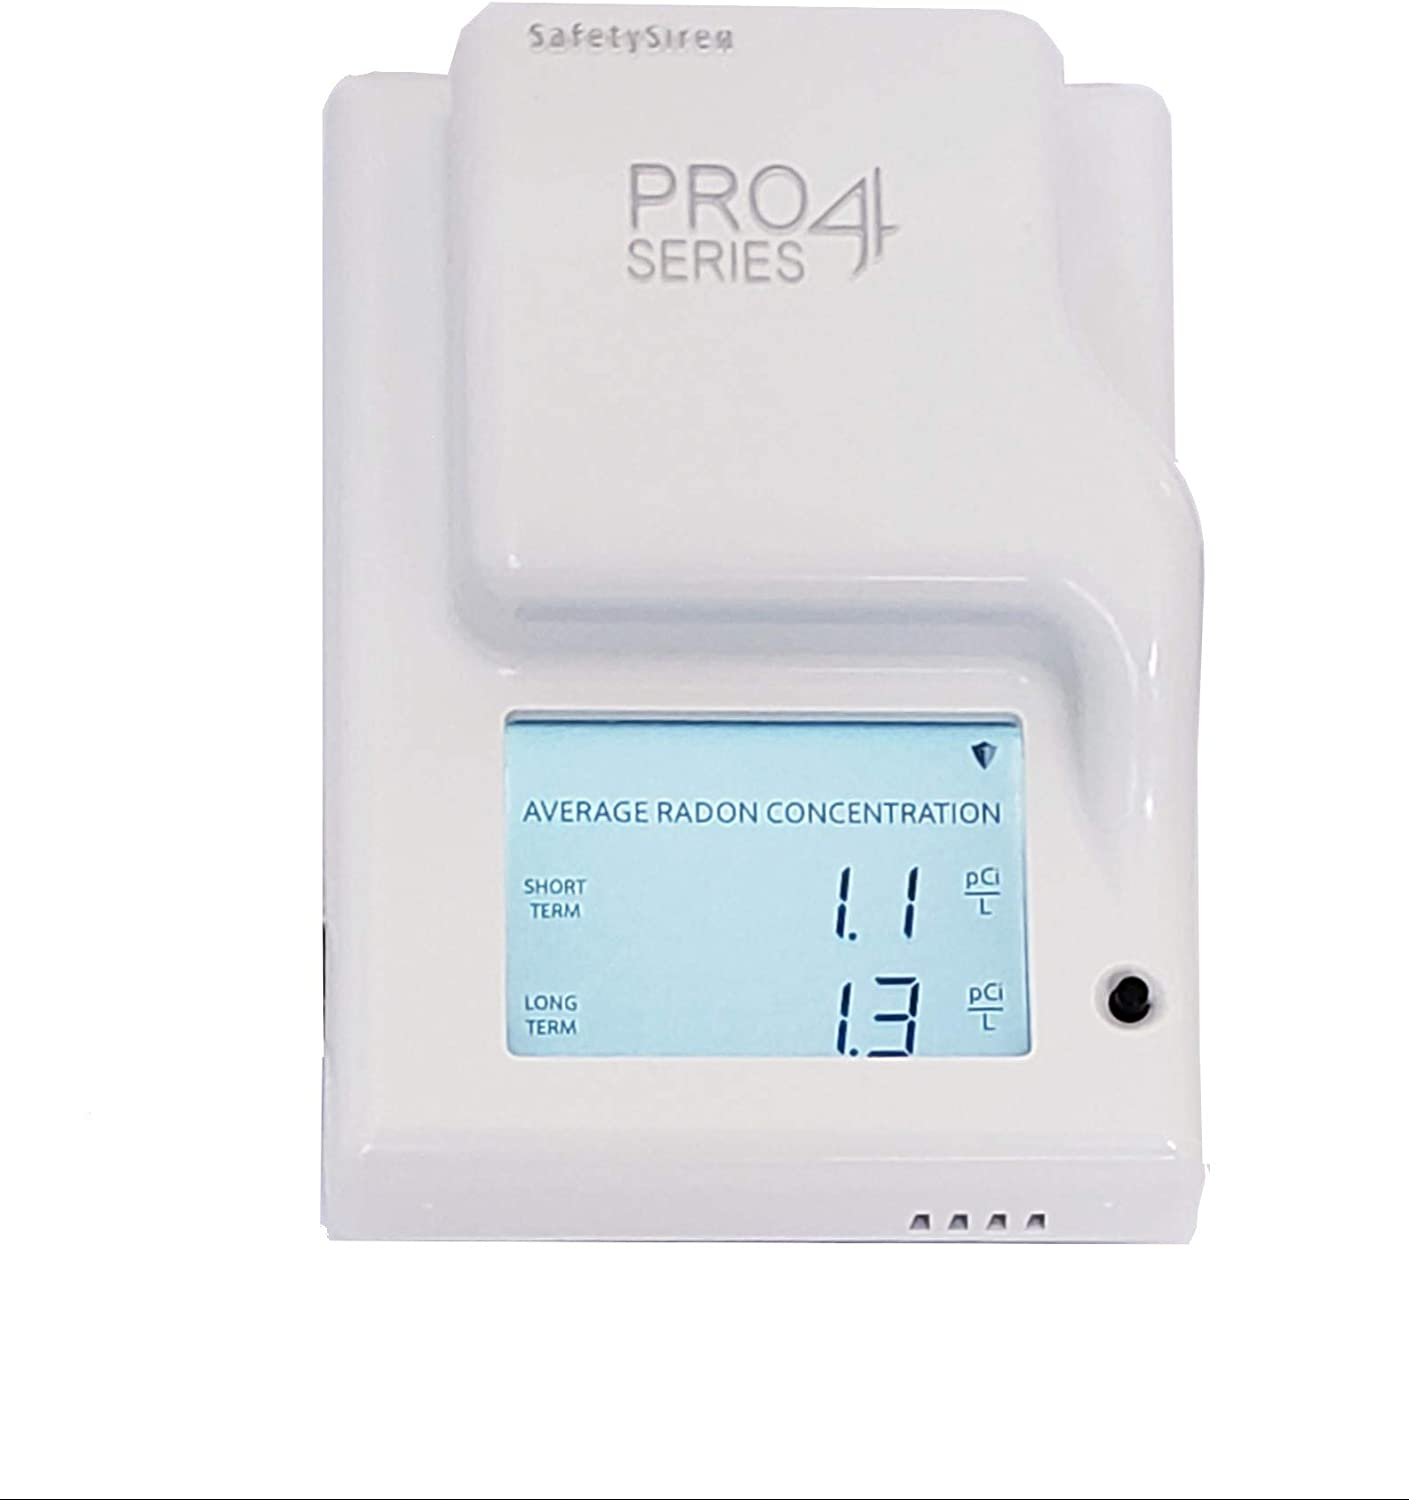 SafetySiren Pro4 Series (4th Gen) - Leader in Home Radon Detection Since 1993. Made in The USA - USA Version pCi/L